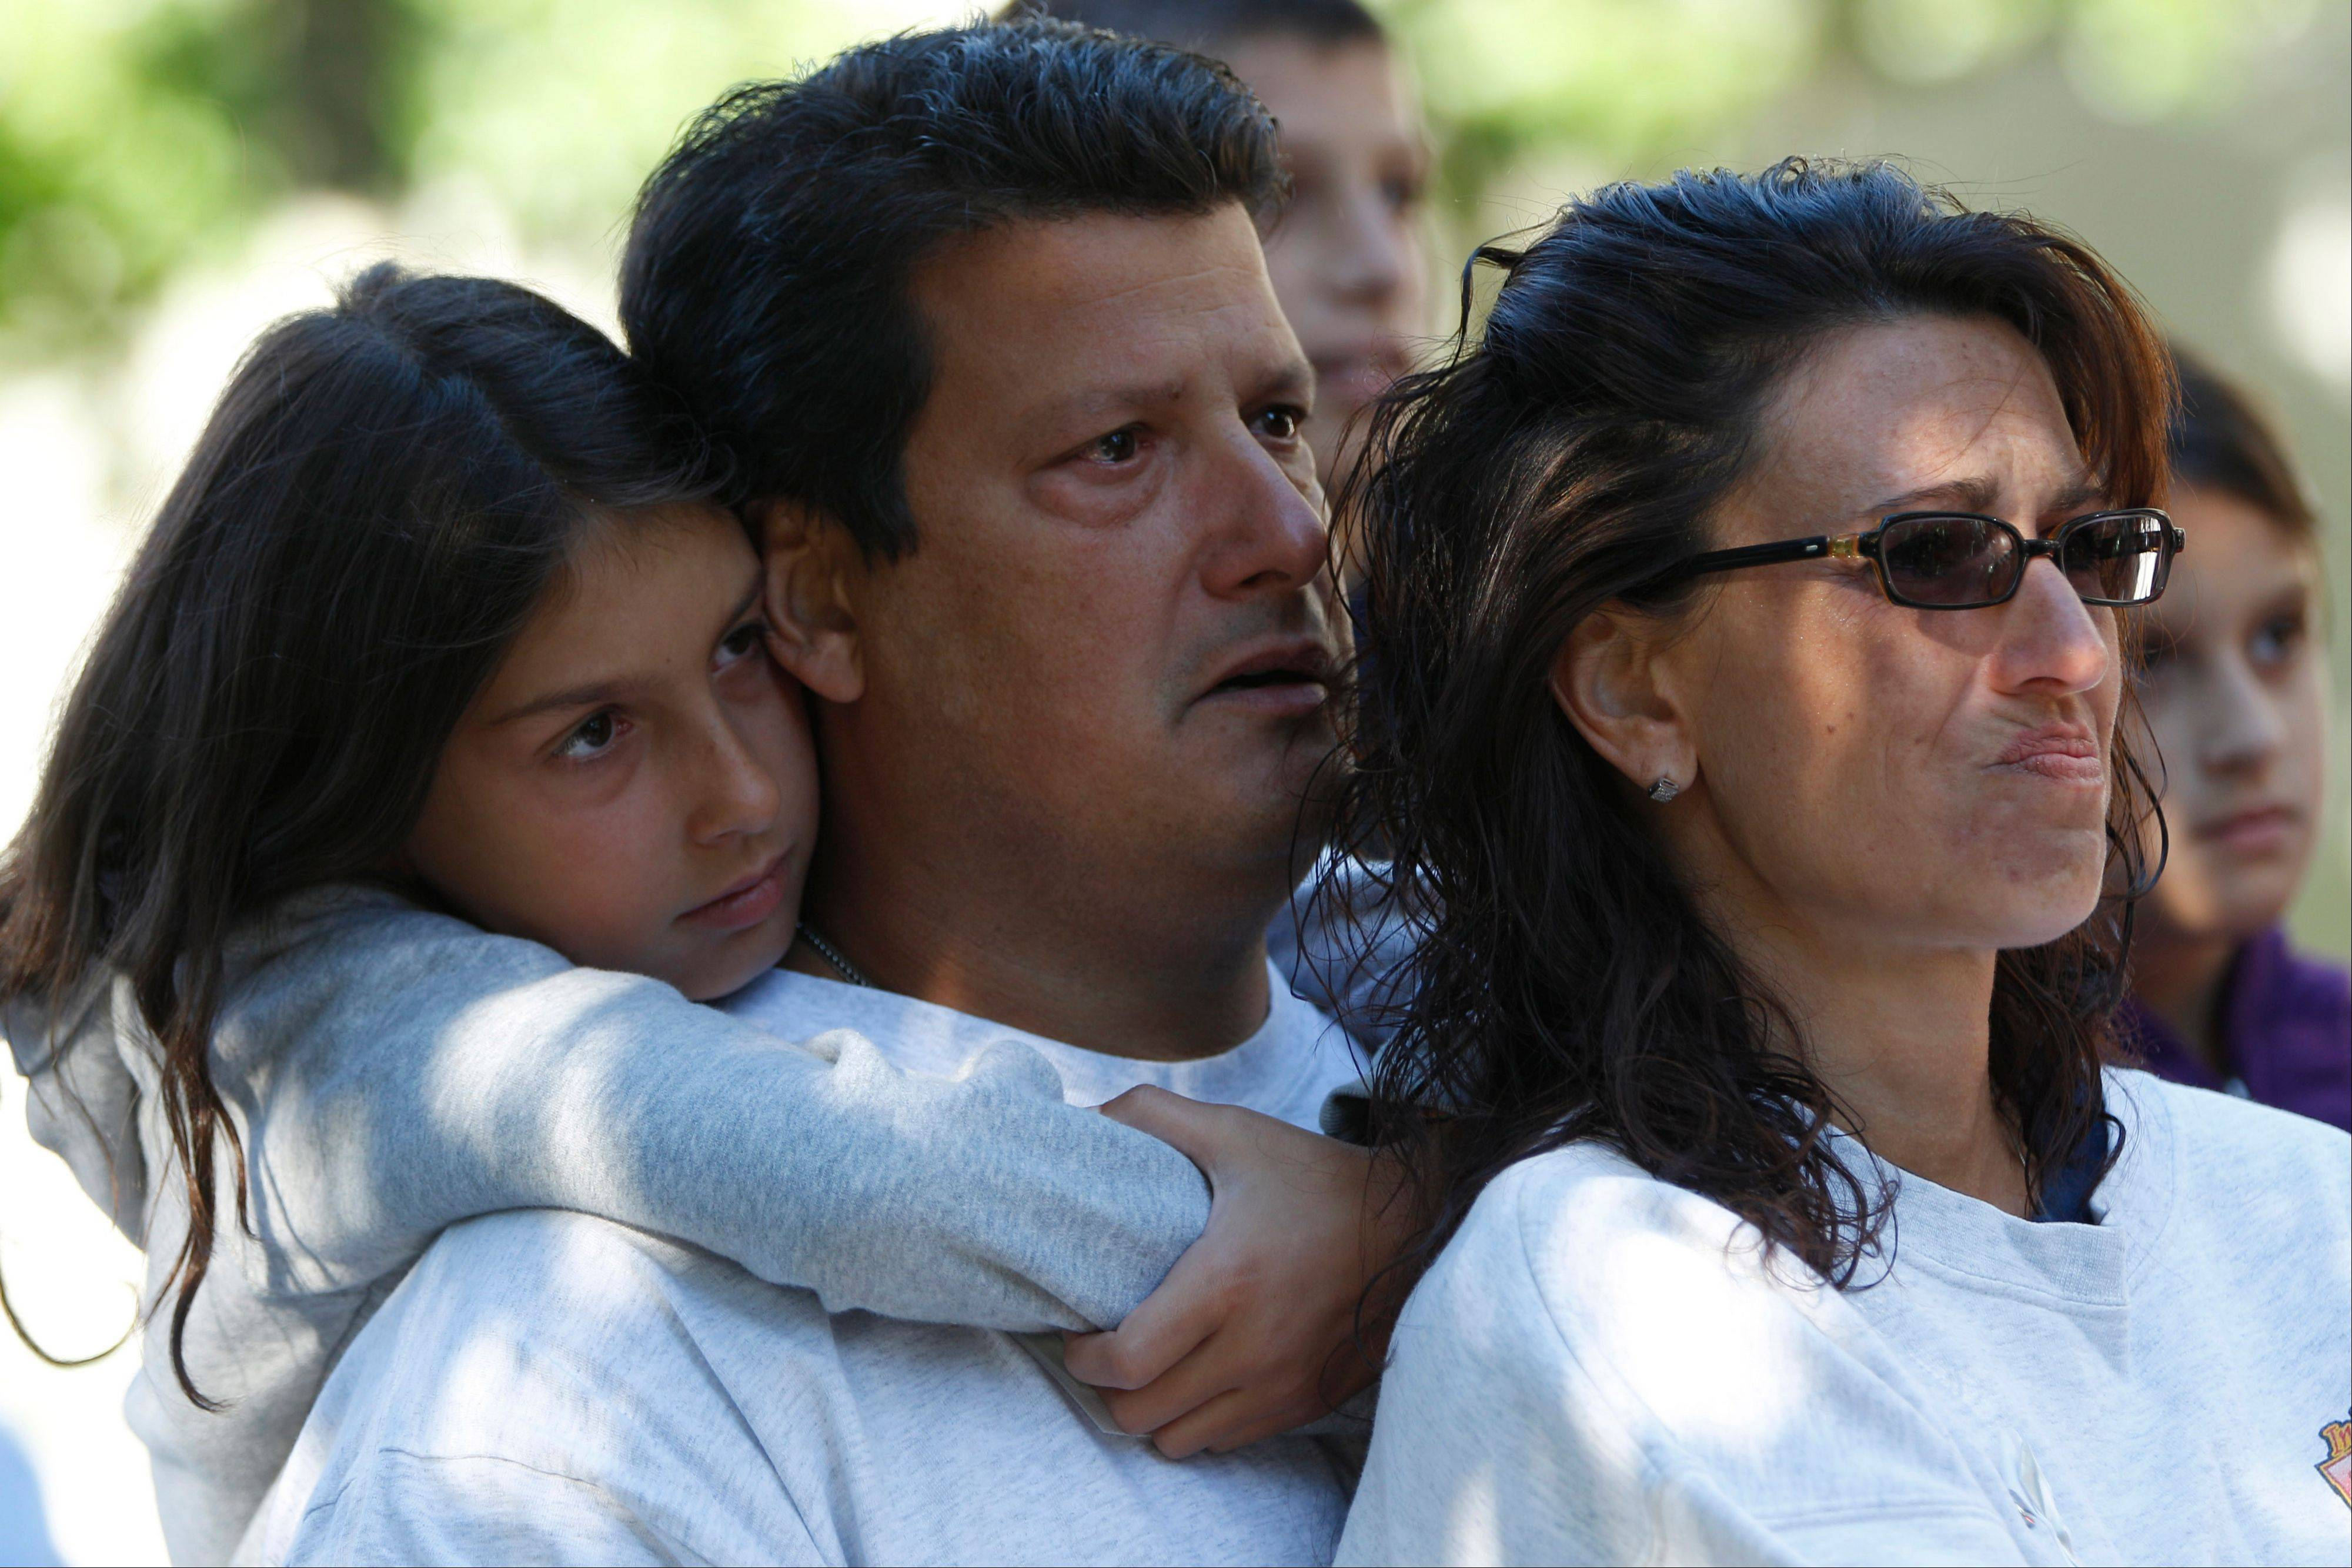 Sofia, Dominick, and Maureen Esposito, left to right, listen as the name of their relative Frankie Esposito is read during the observance of the 11th anniversary of the attacks on the World Trade Center, Tuesday, Sept. 11, 2012 in New York.